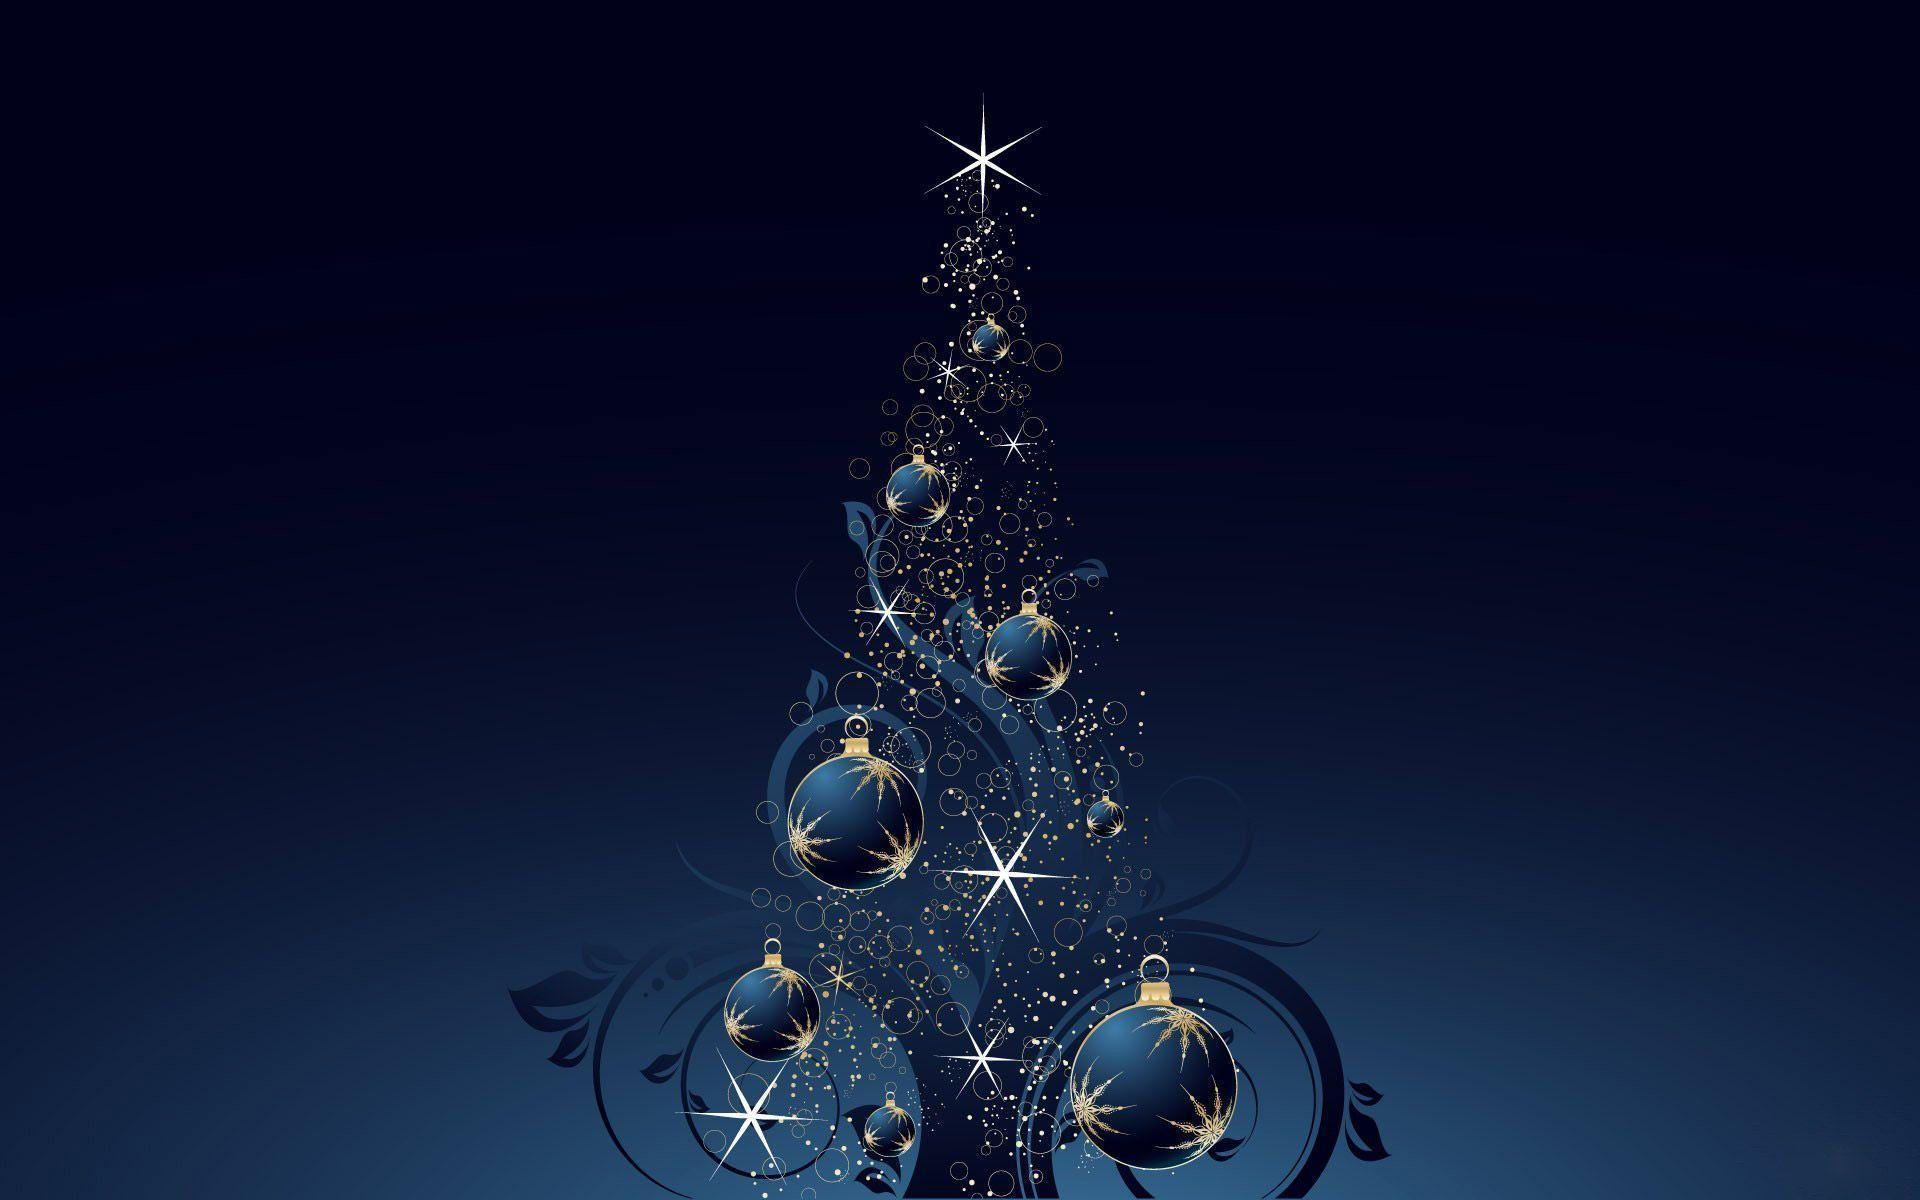 Christmas tree wallpapers free wallpaper cave - Free christmas images for desktop wallpaper ...